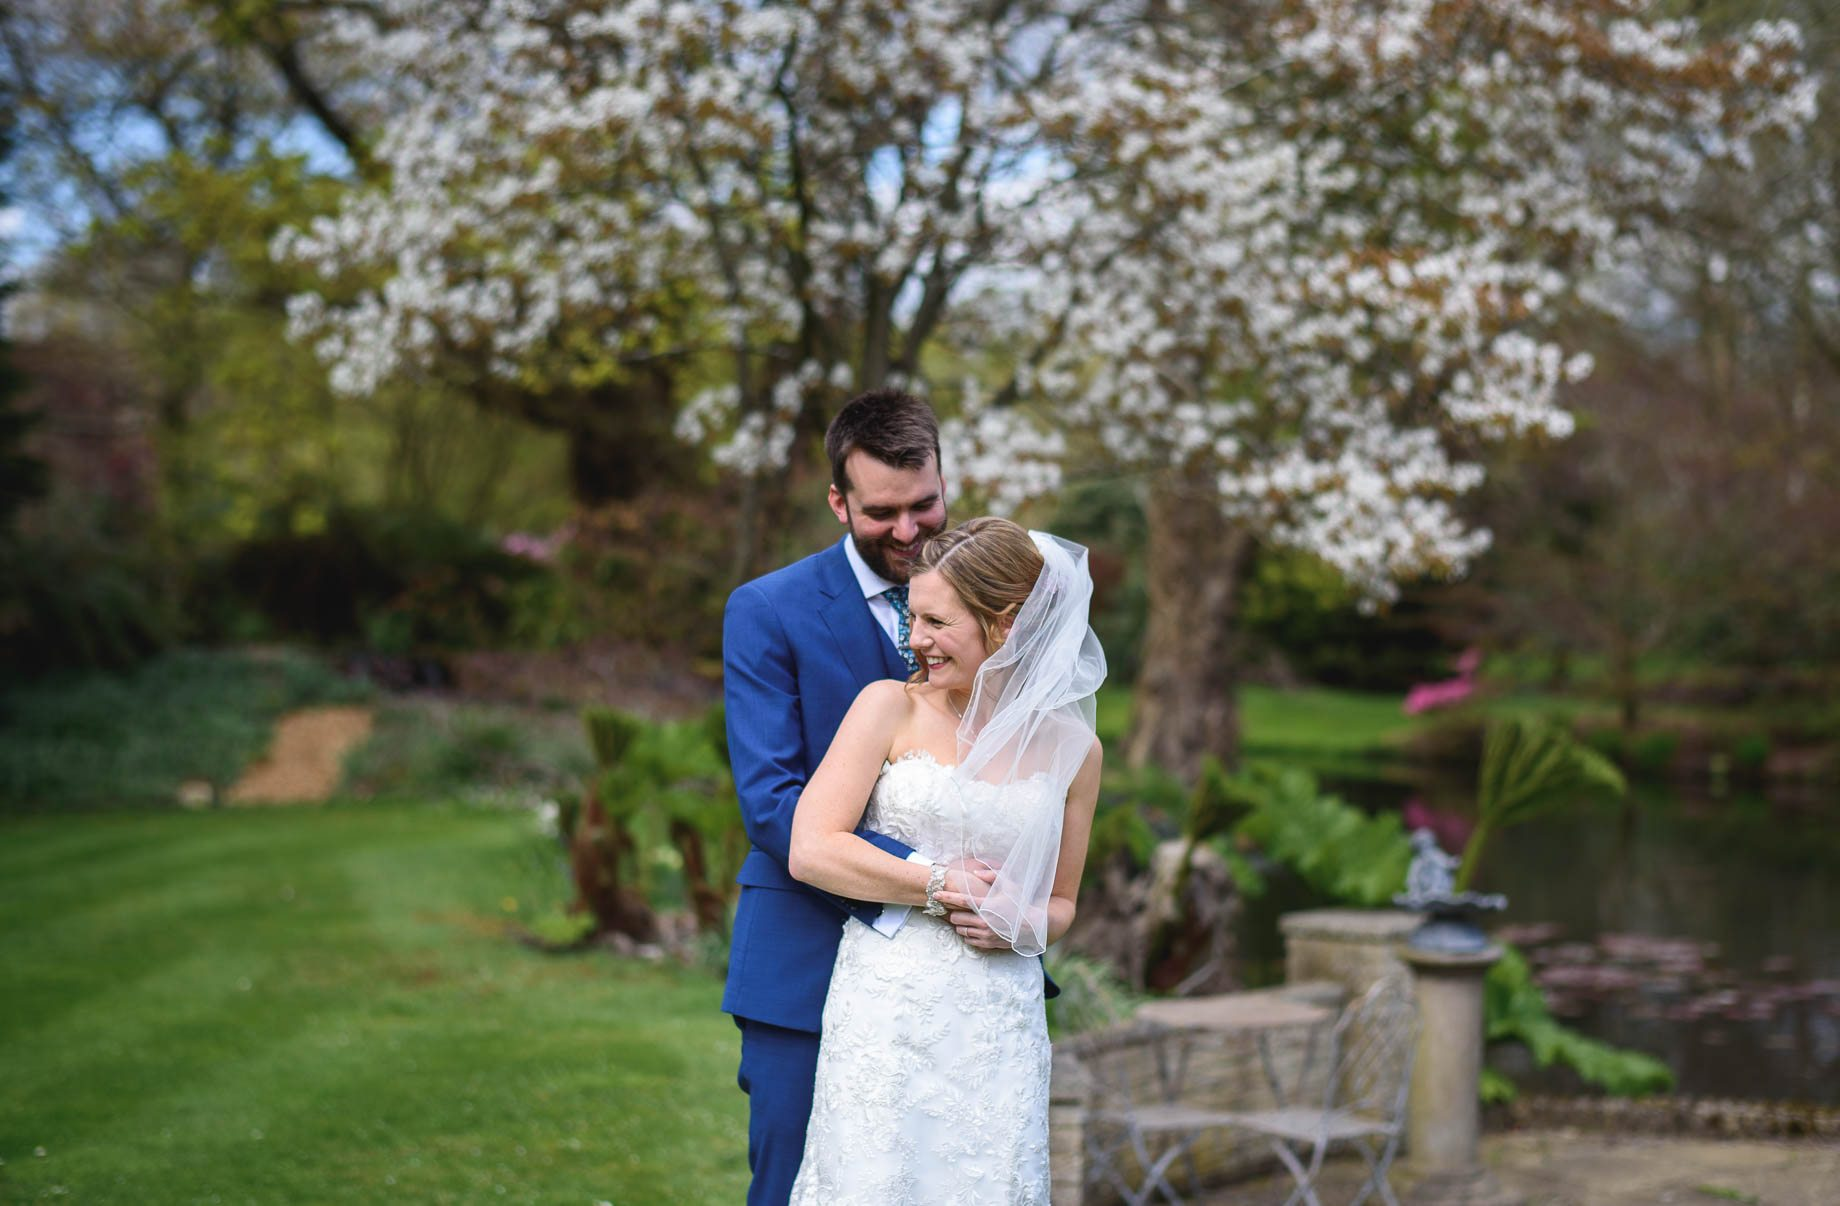 Rivervale Barn wedding photography by Guy Collier - Claire and Simon (84 of 133)